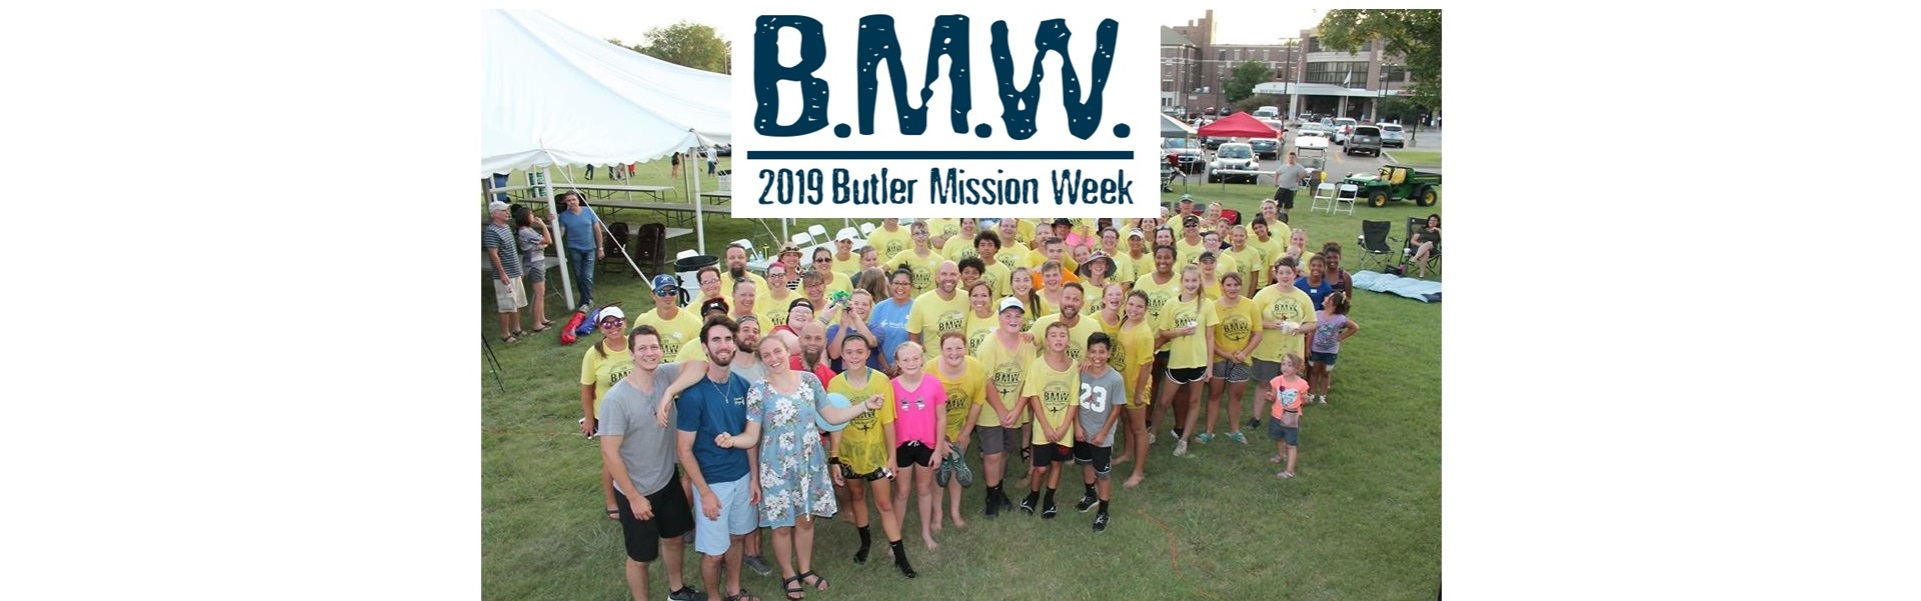 Butler Mission Week